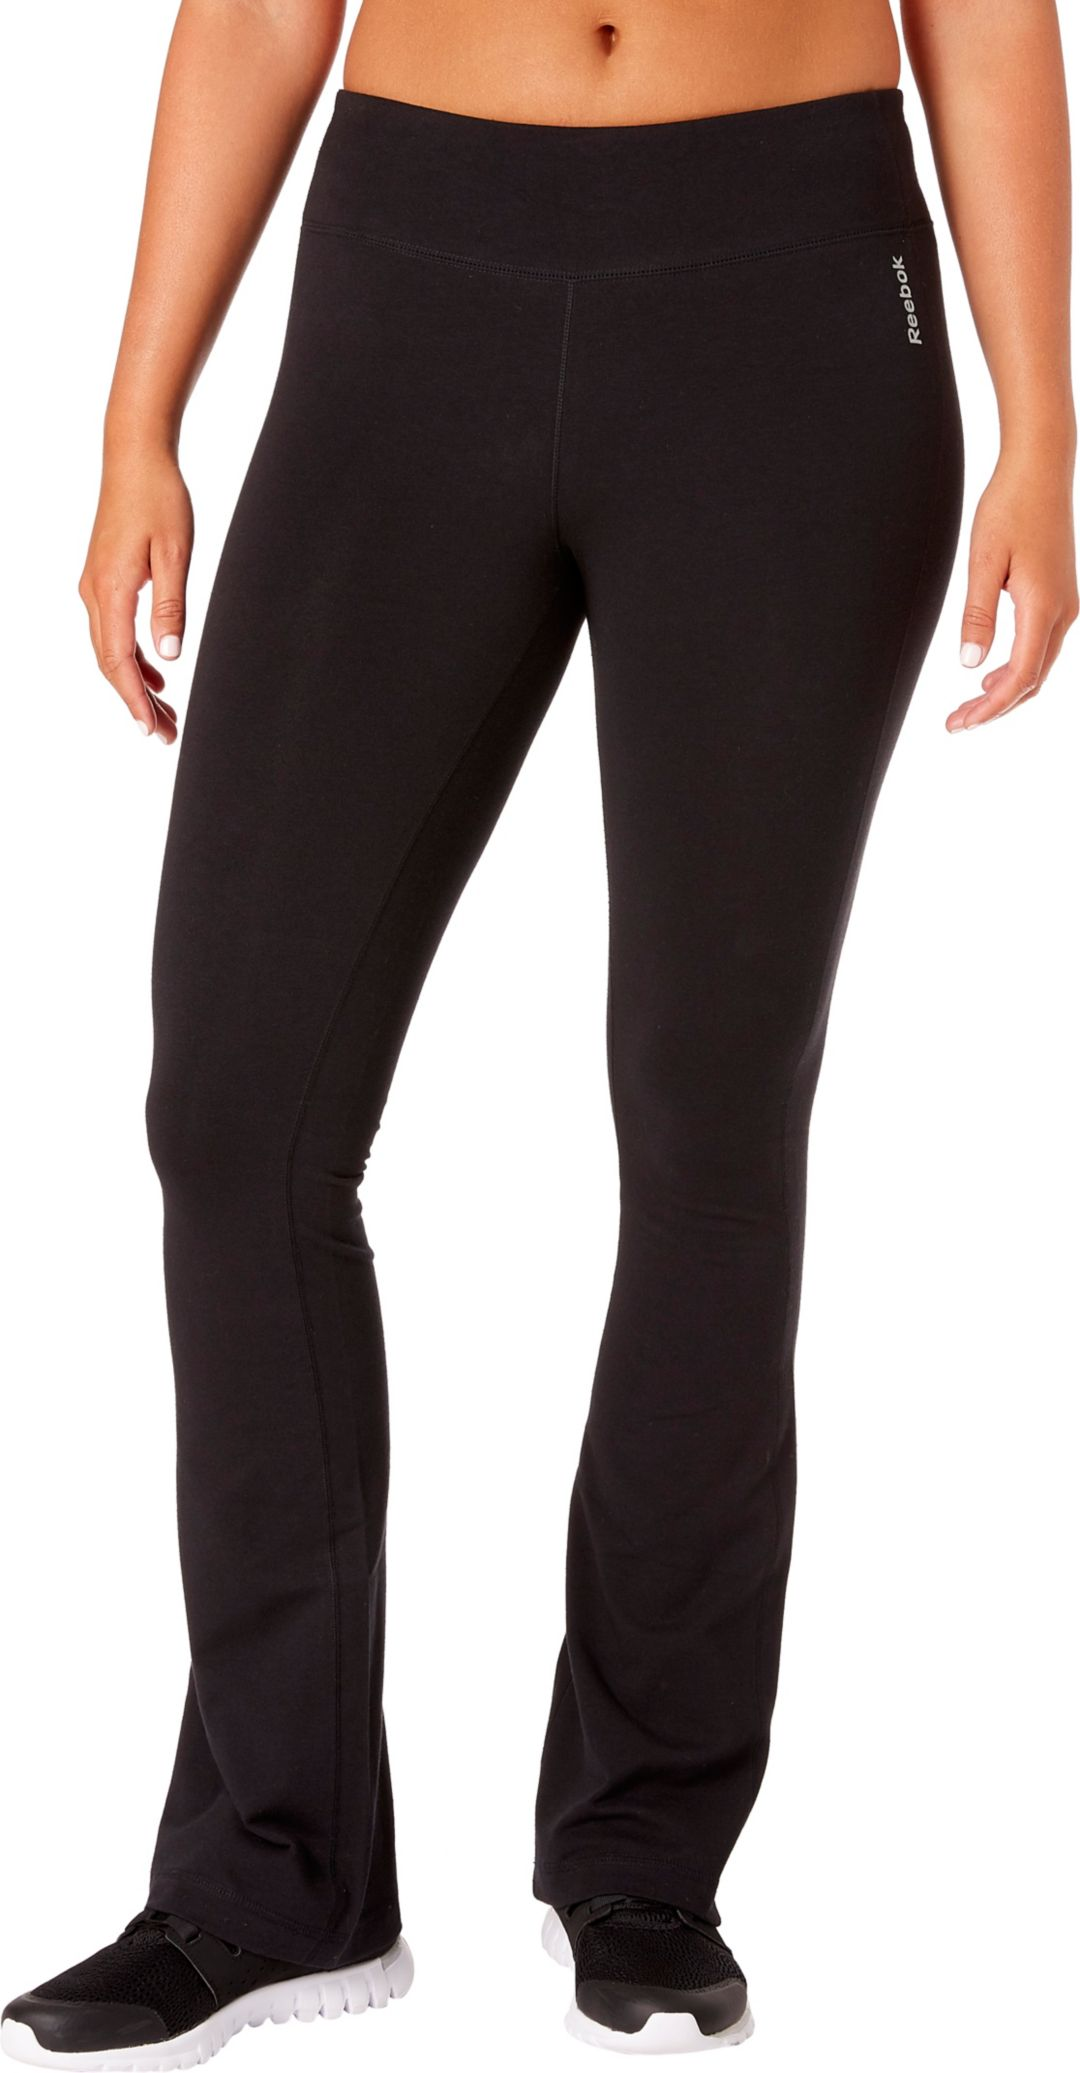 daaf01797 Reebok Women's Stretch Cotton Flare Pants | DICK'S Sporting Goods